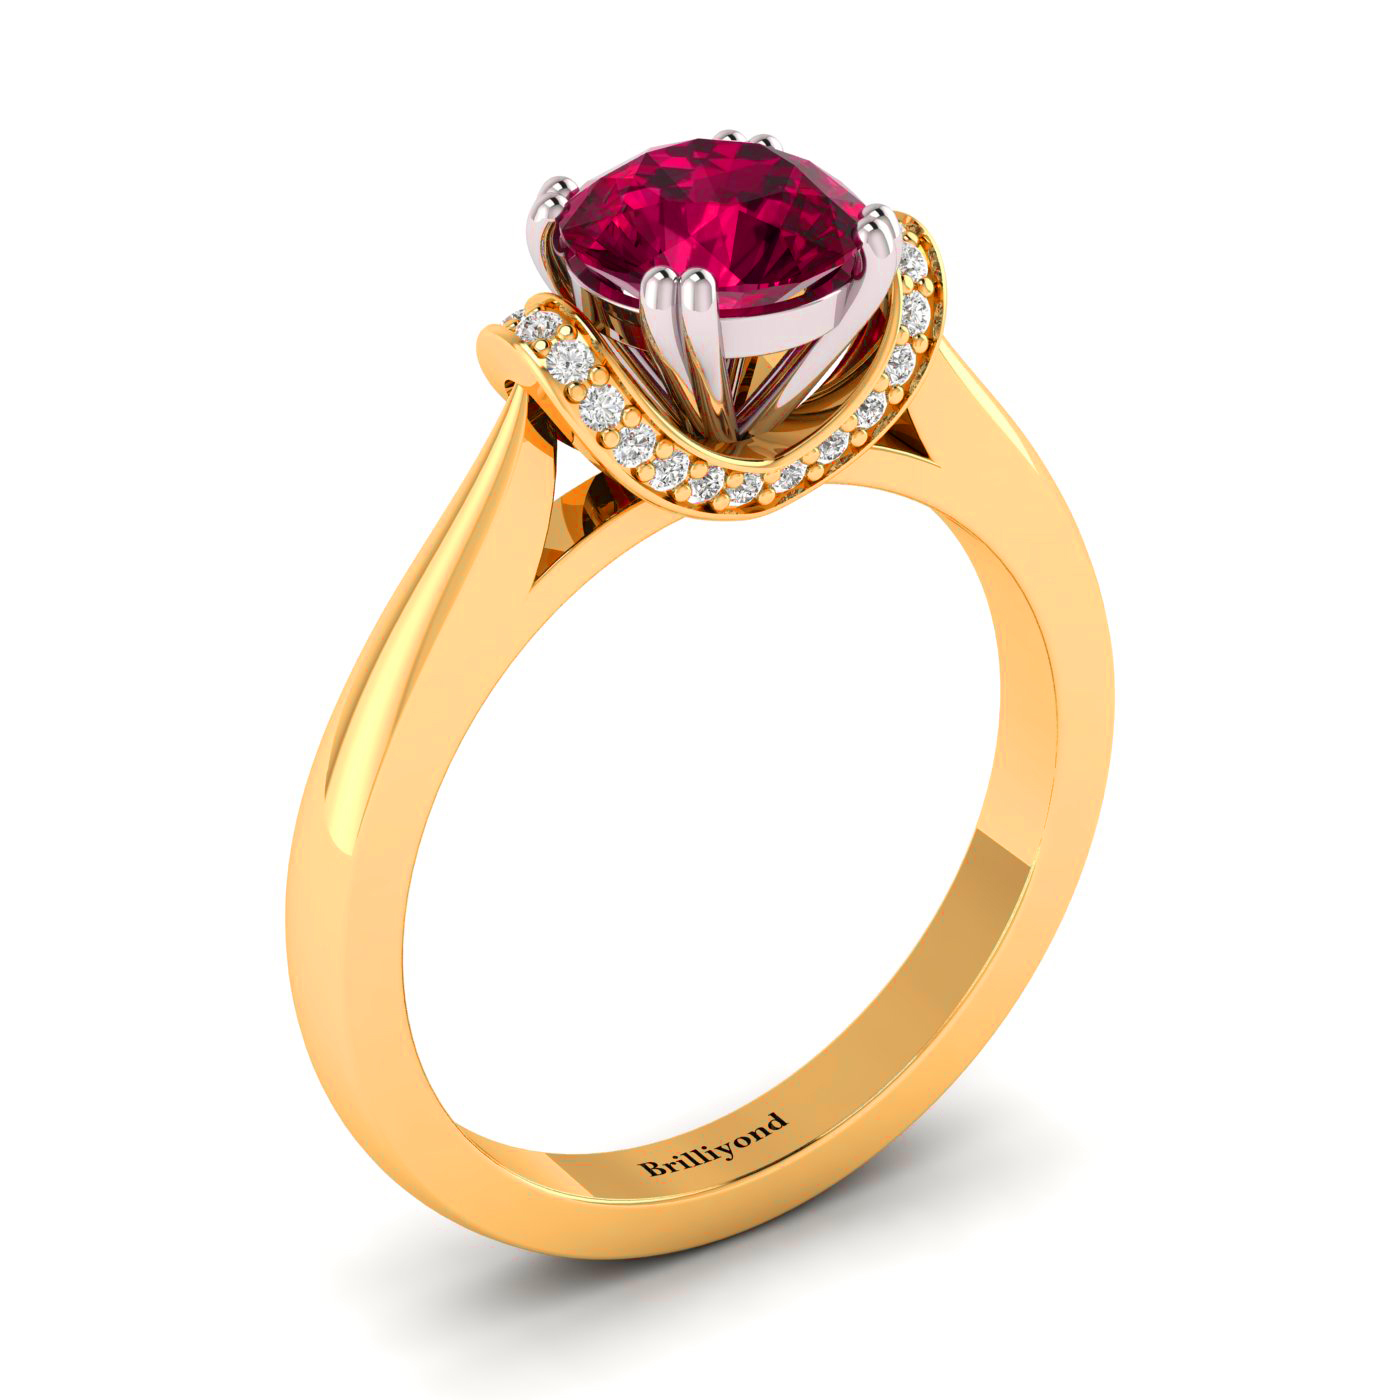 6mm Ruby with 26 Genuine Diamonds on a Two Tone Gold Band